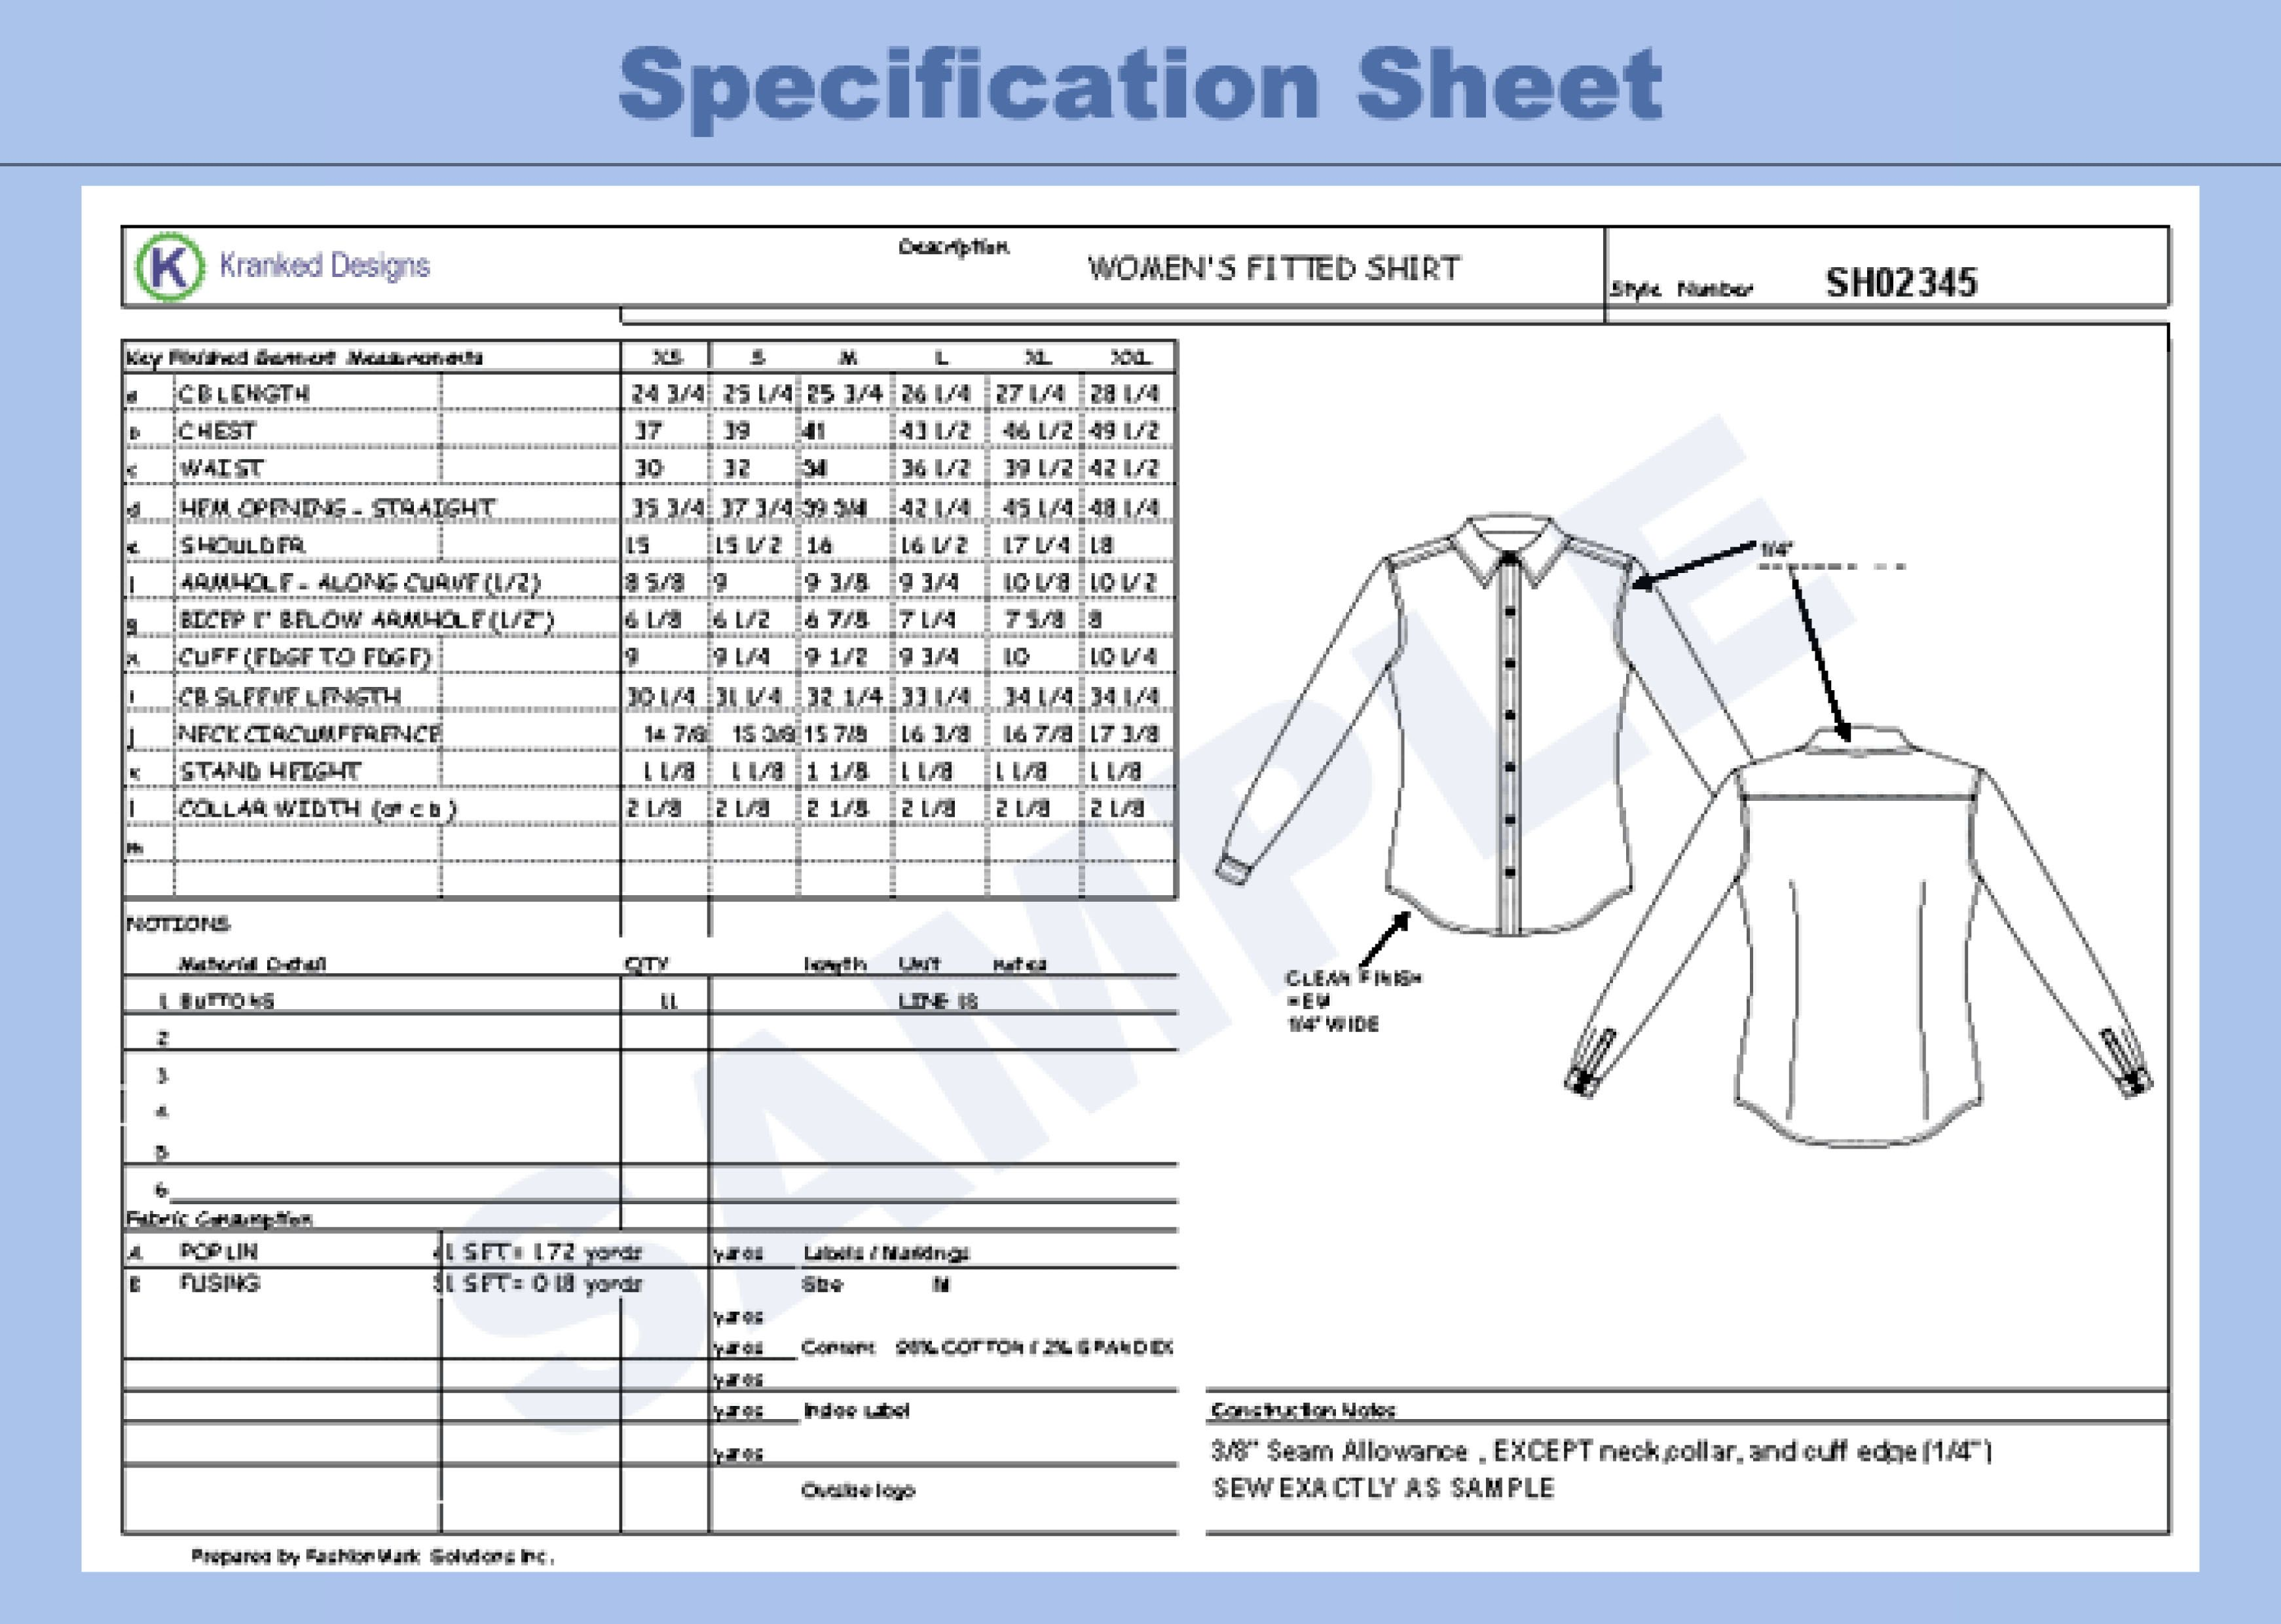 spec sheet | Fashion Spes | Pinterest | Patterns and Craft